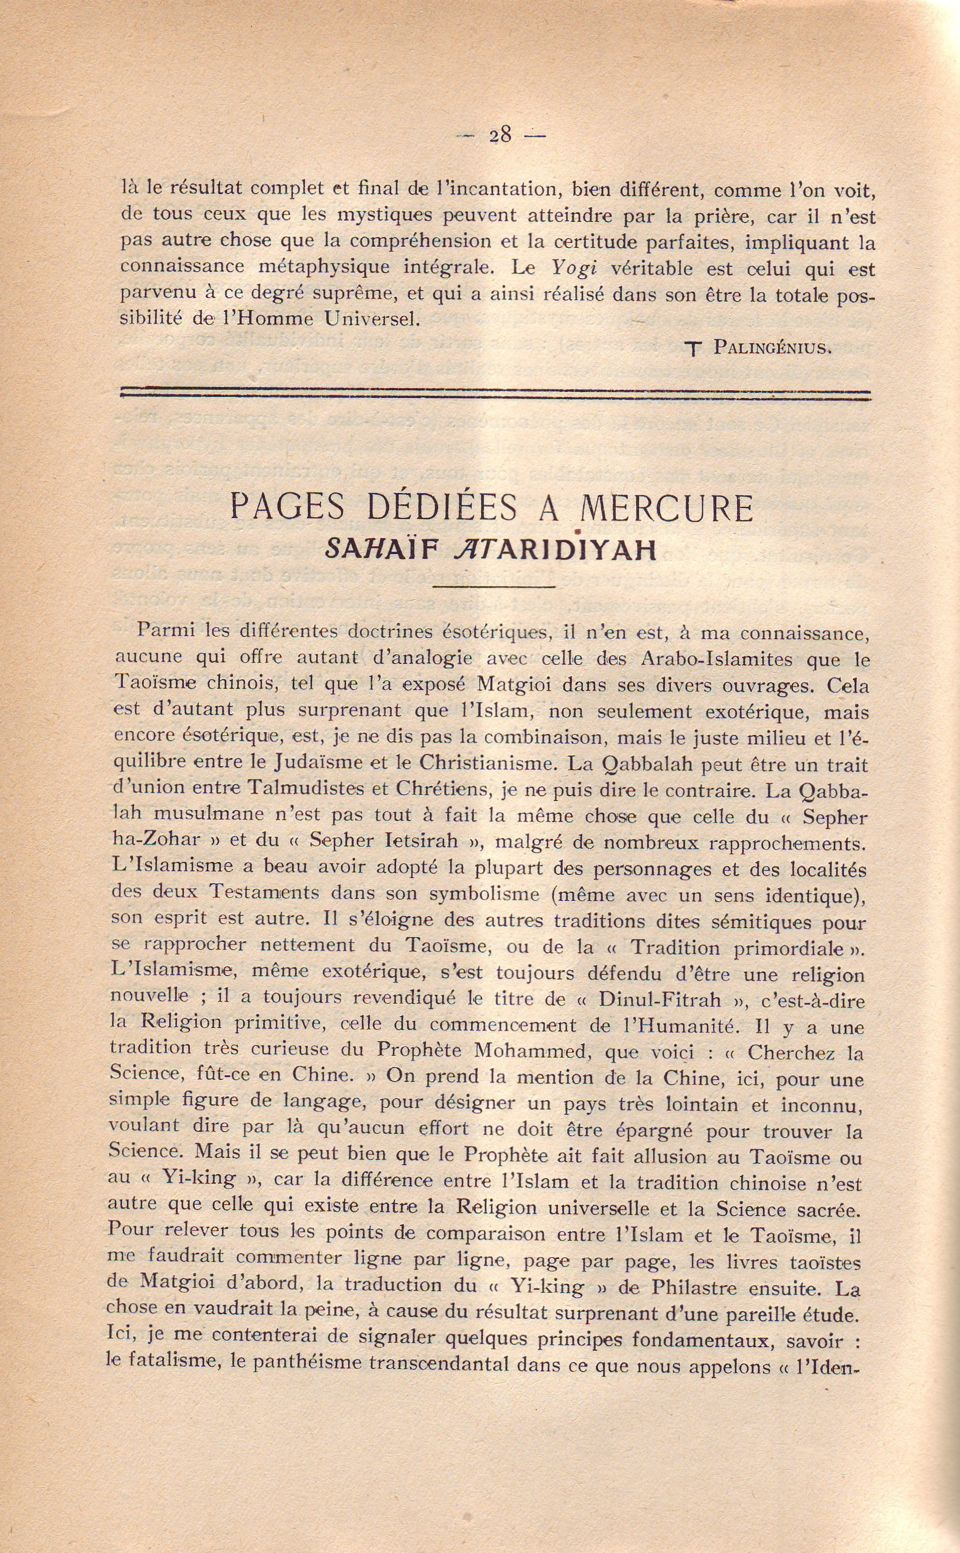 Pages..Mércure . 28